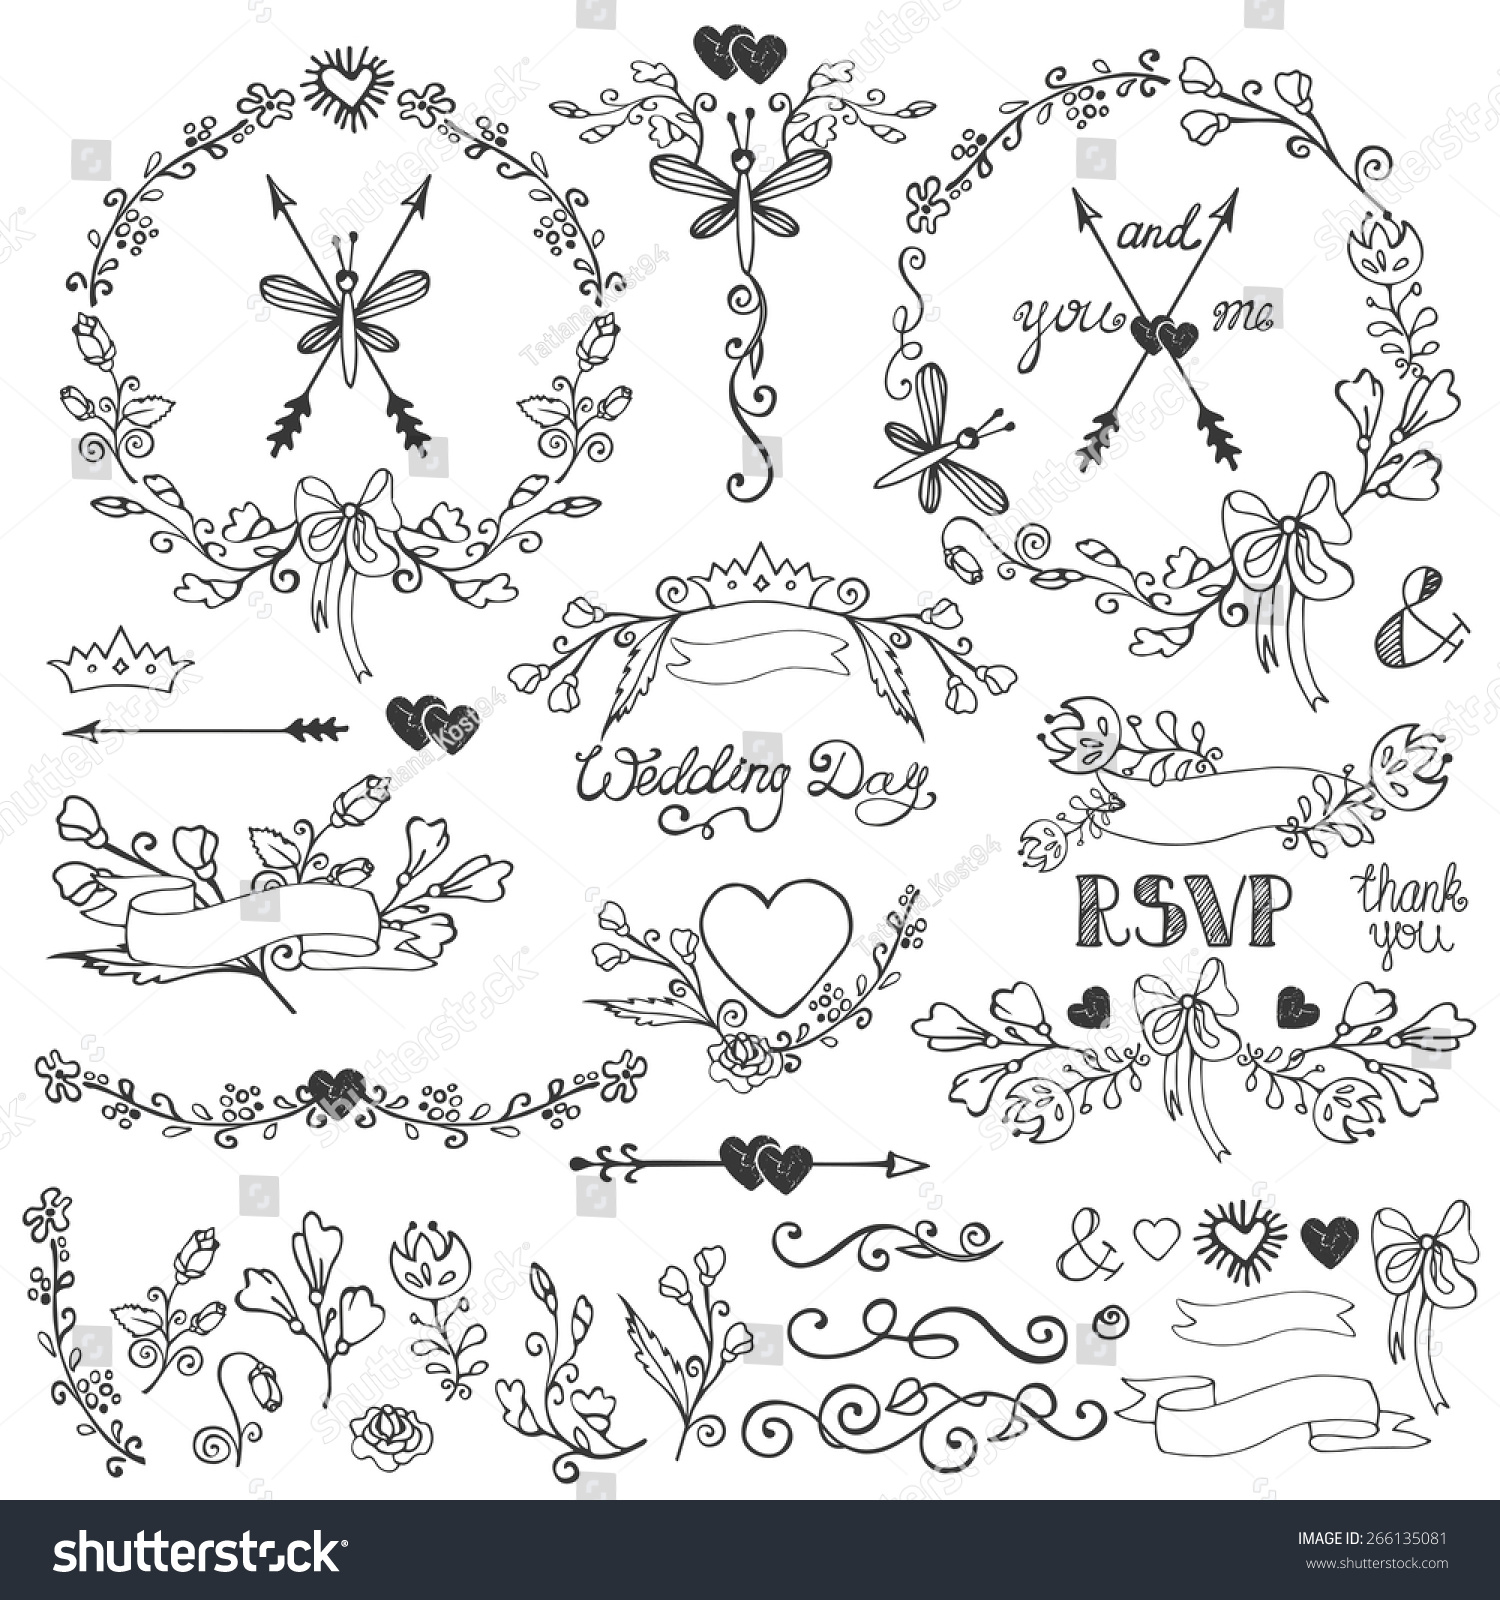 wedding doodles floral decor elements setswirling stock vector